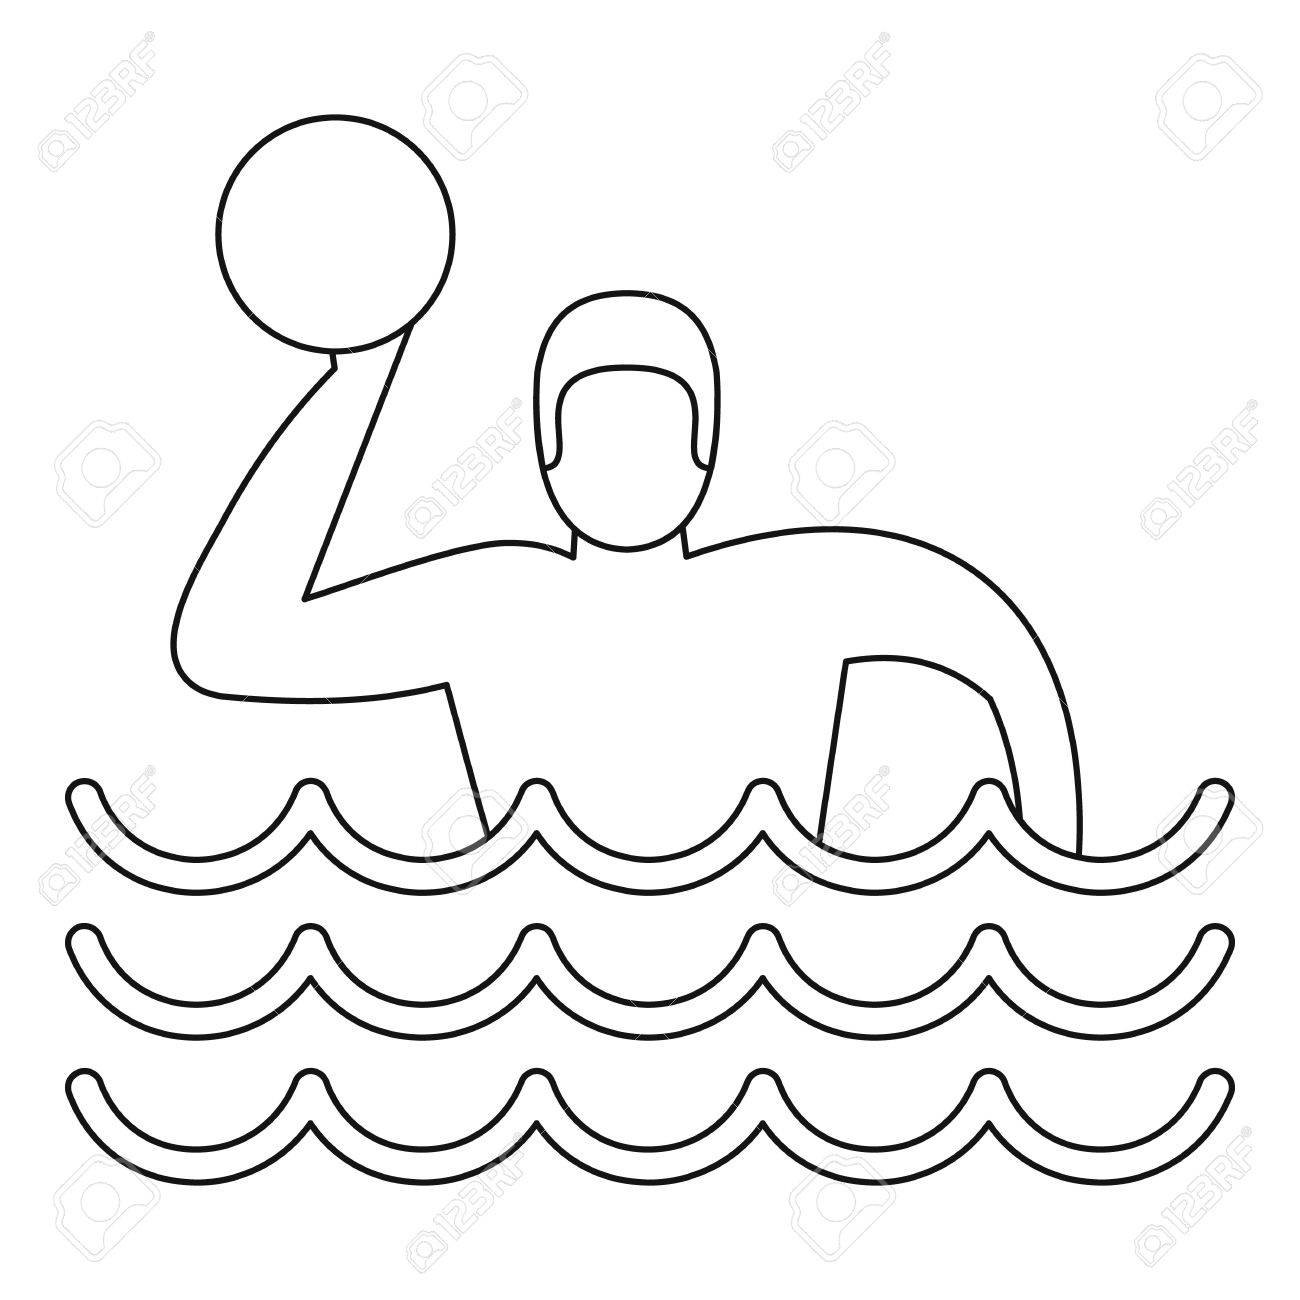 1300x1300 Water Polo Player Icon. Outline Illustration Of Water Polo Player